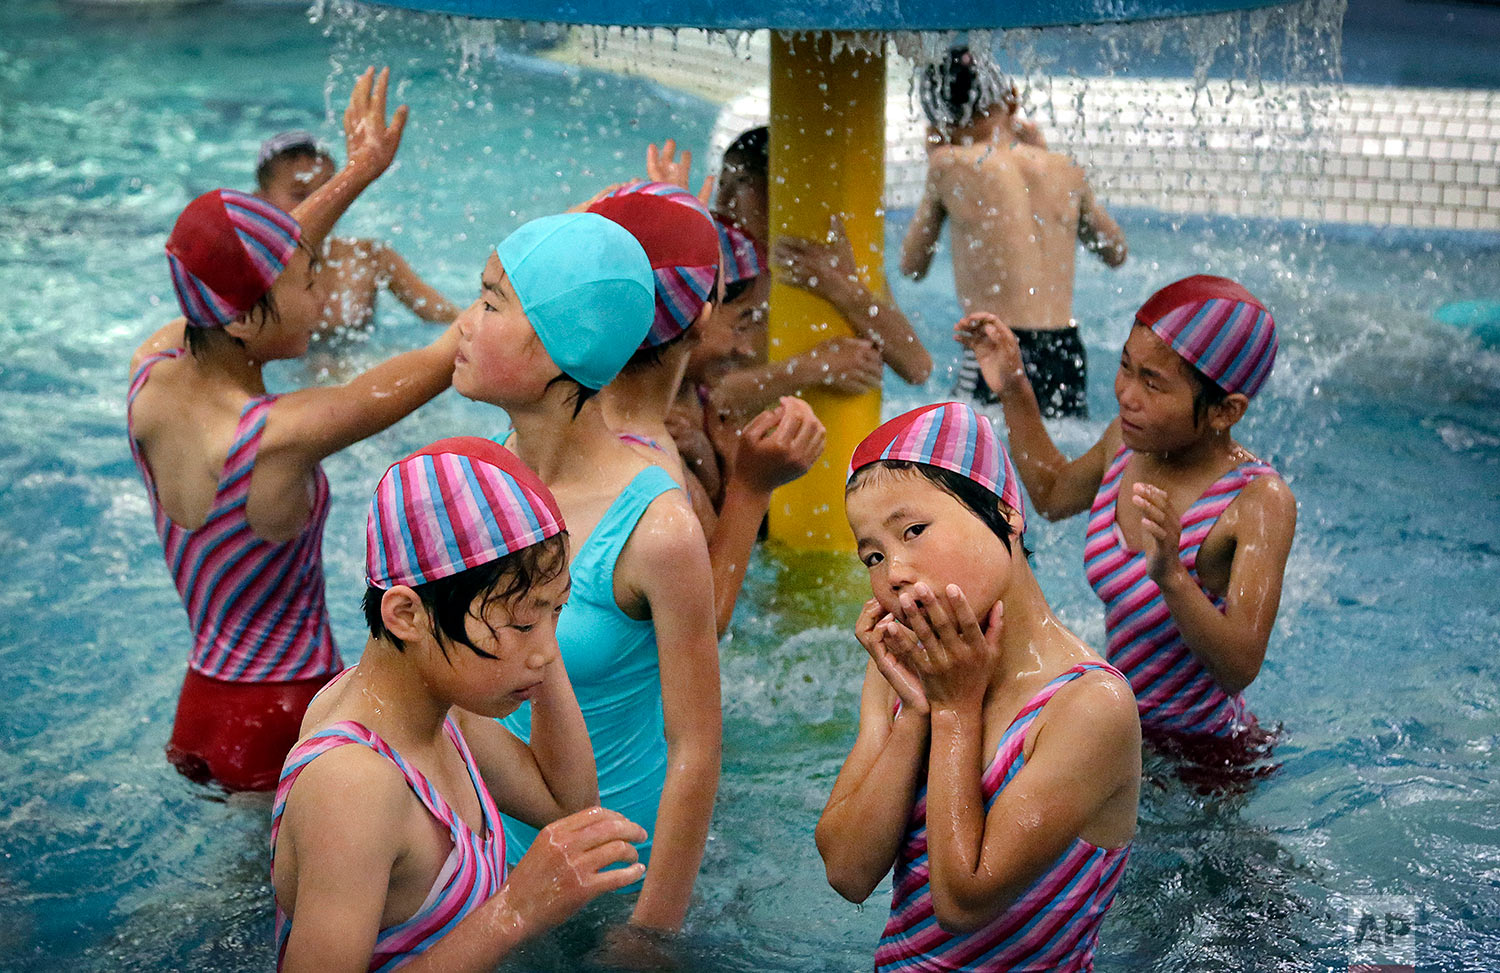 North Korean school children play in the aquatic center at the Songdowon International Children's Camp in Wonsan, North Korea, on June 23, 2016. The camp, which has been operating for about 30 years, was intended mainly to deepen relations with friendly countries in the Communist or non-aligned world. (AP Photo/Wong Maye-E)